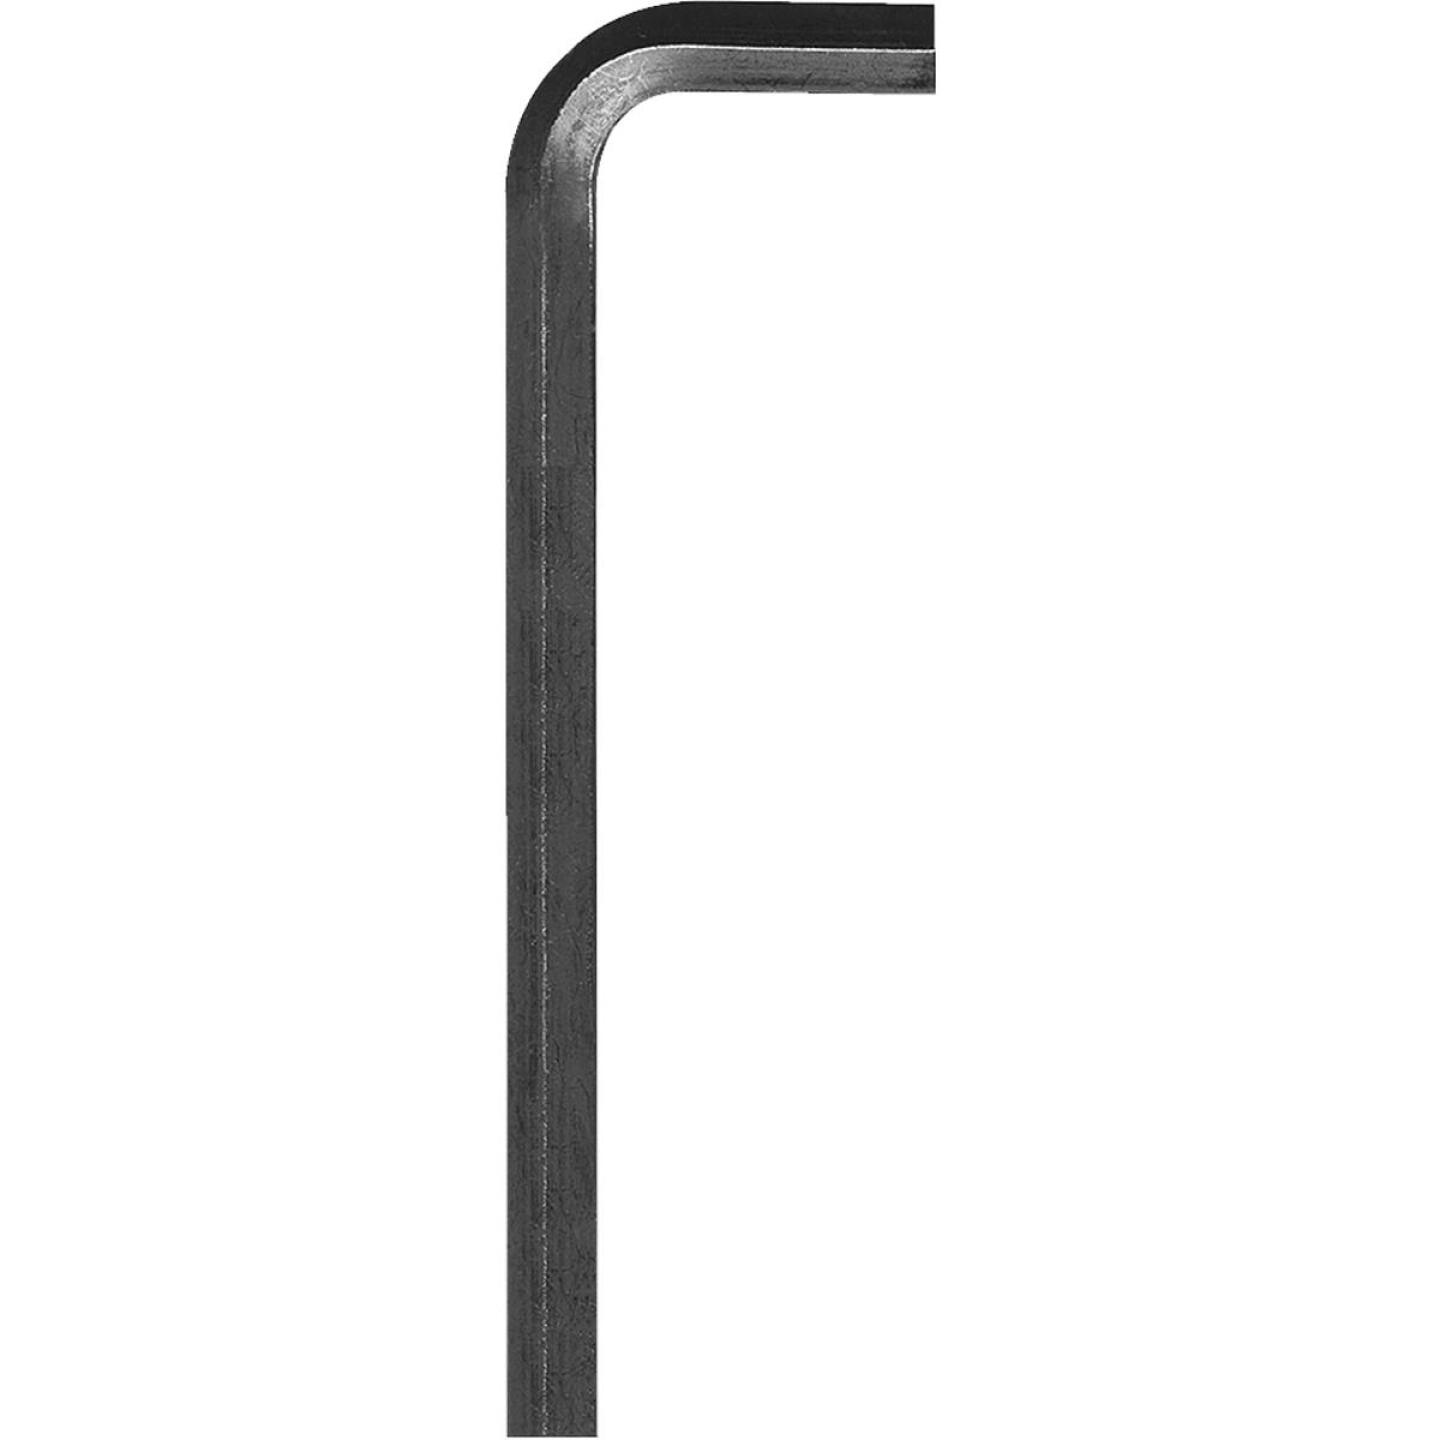 Eklind 7/64 In. Standard Hex Key Wrench Image 1